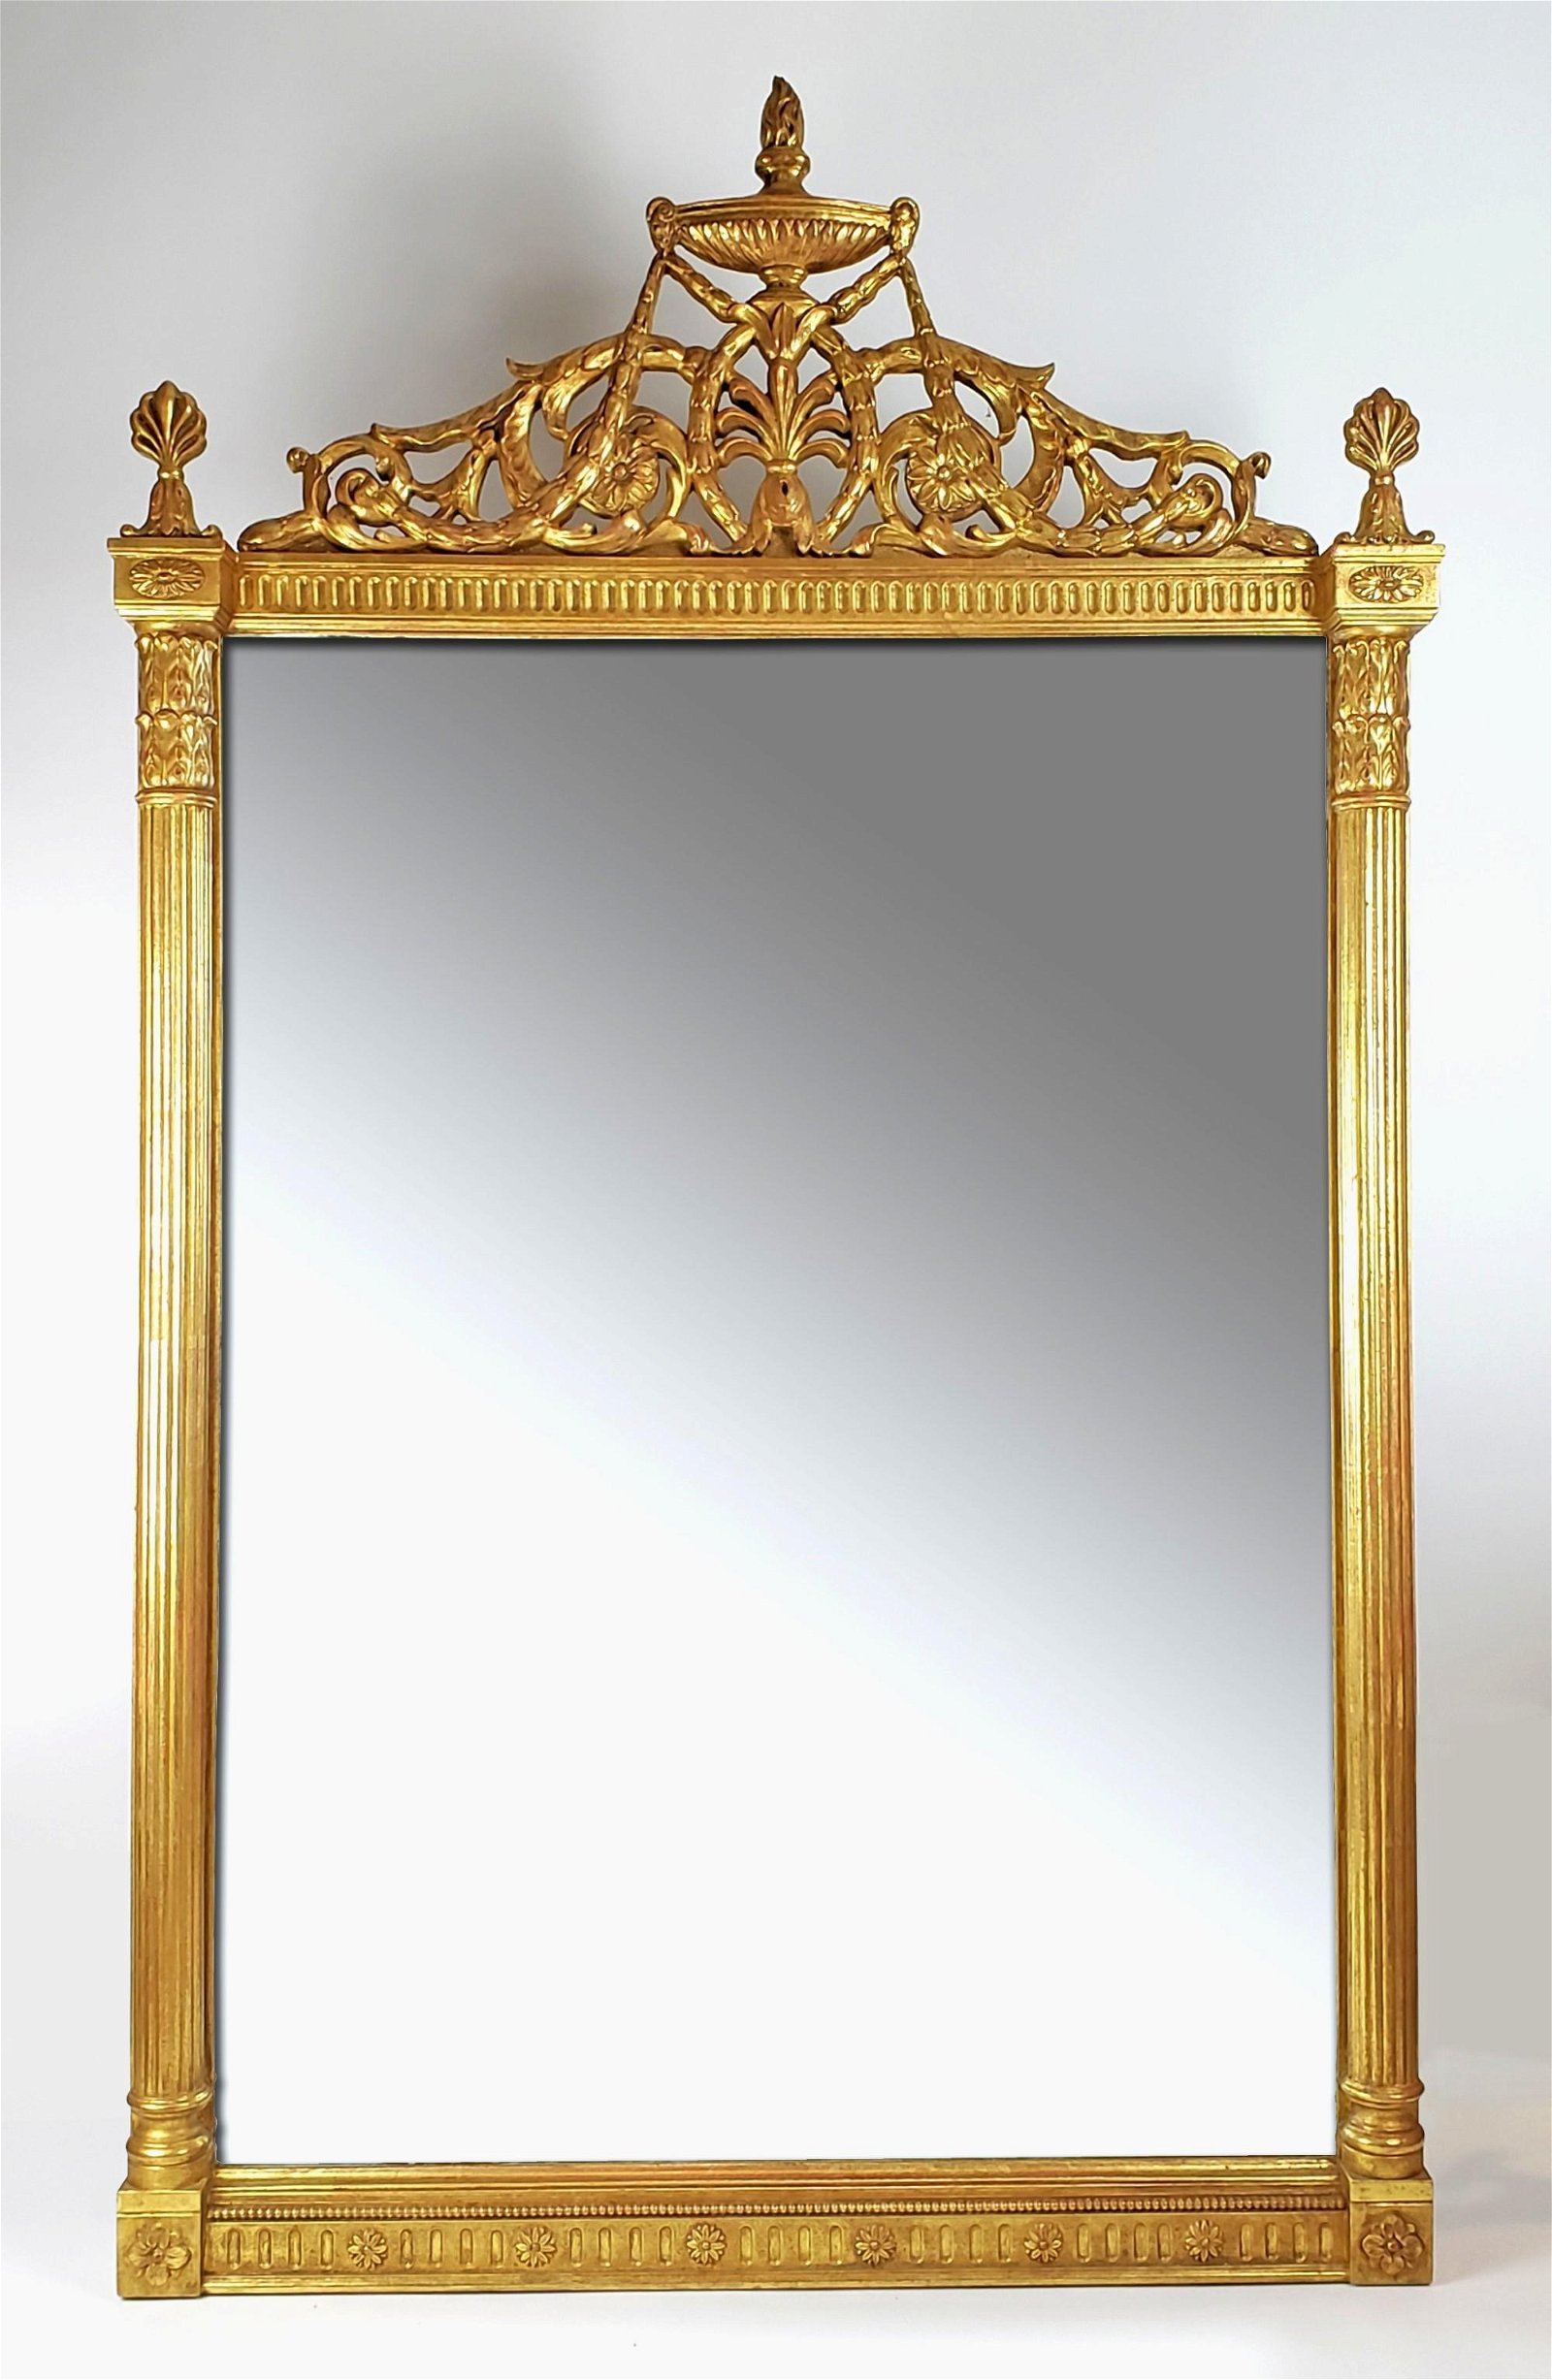 Magnificent Large 19th C. French Gold Leaf Handcarved